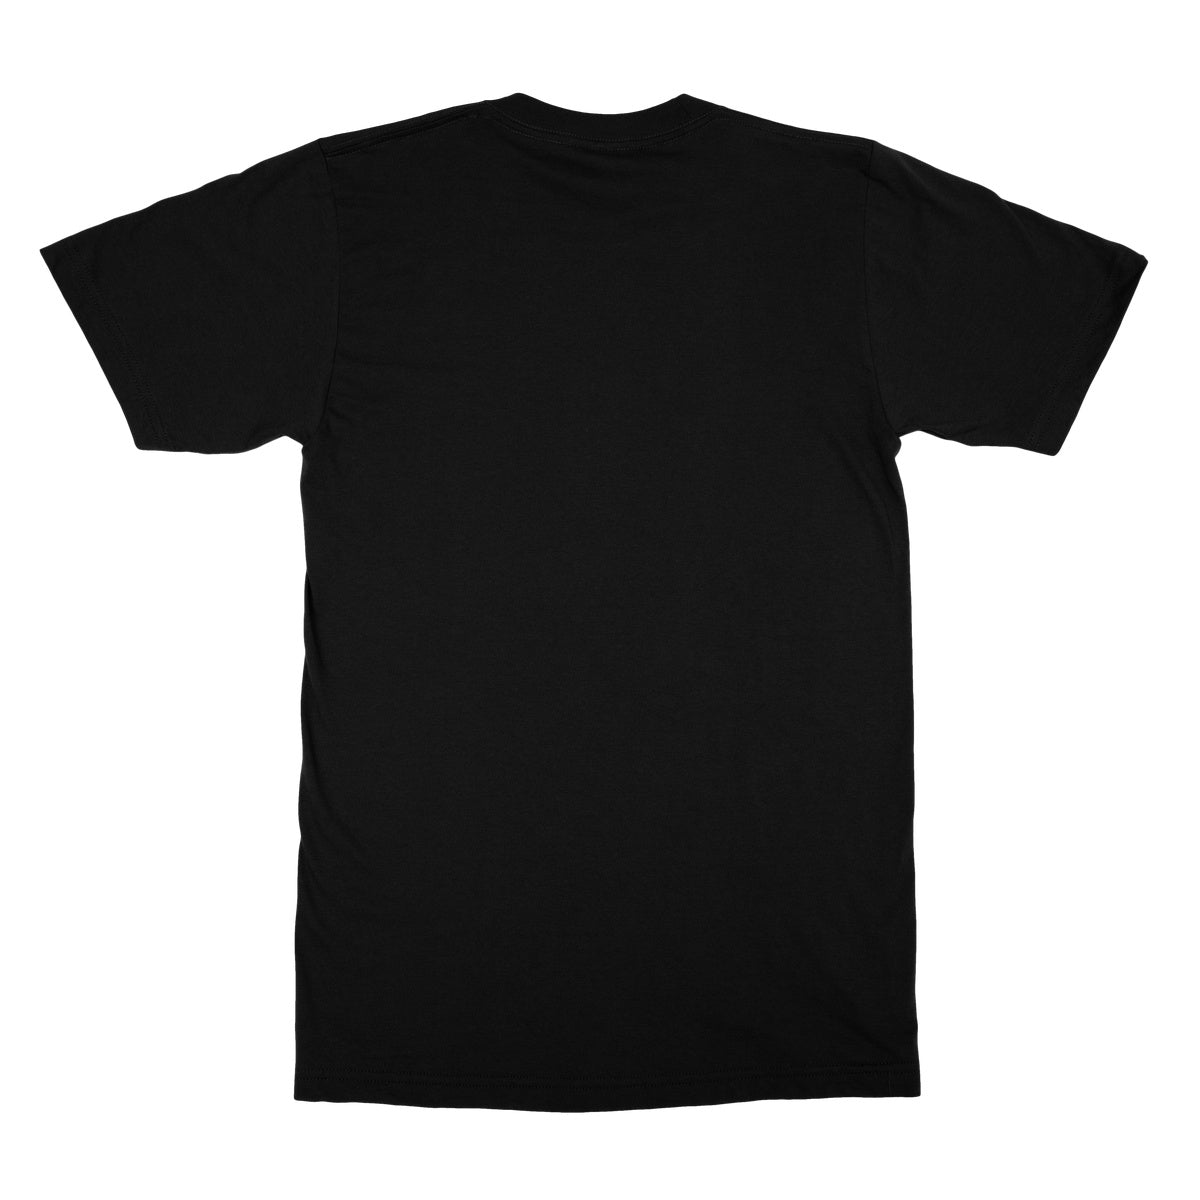 Kronik Japan Black Softstyle T-Shirt